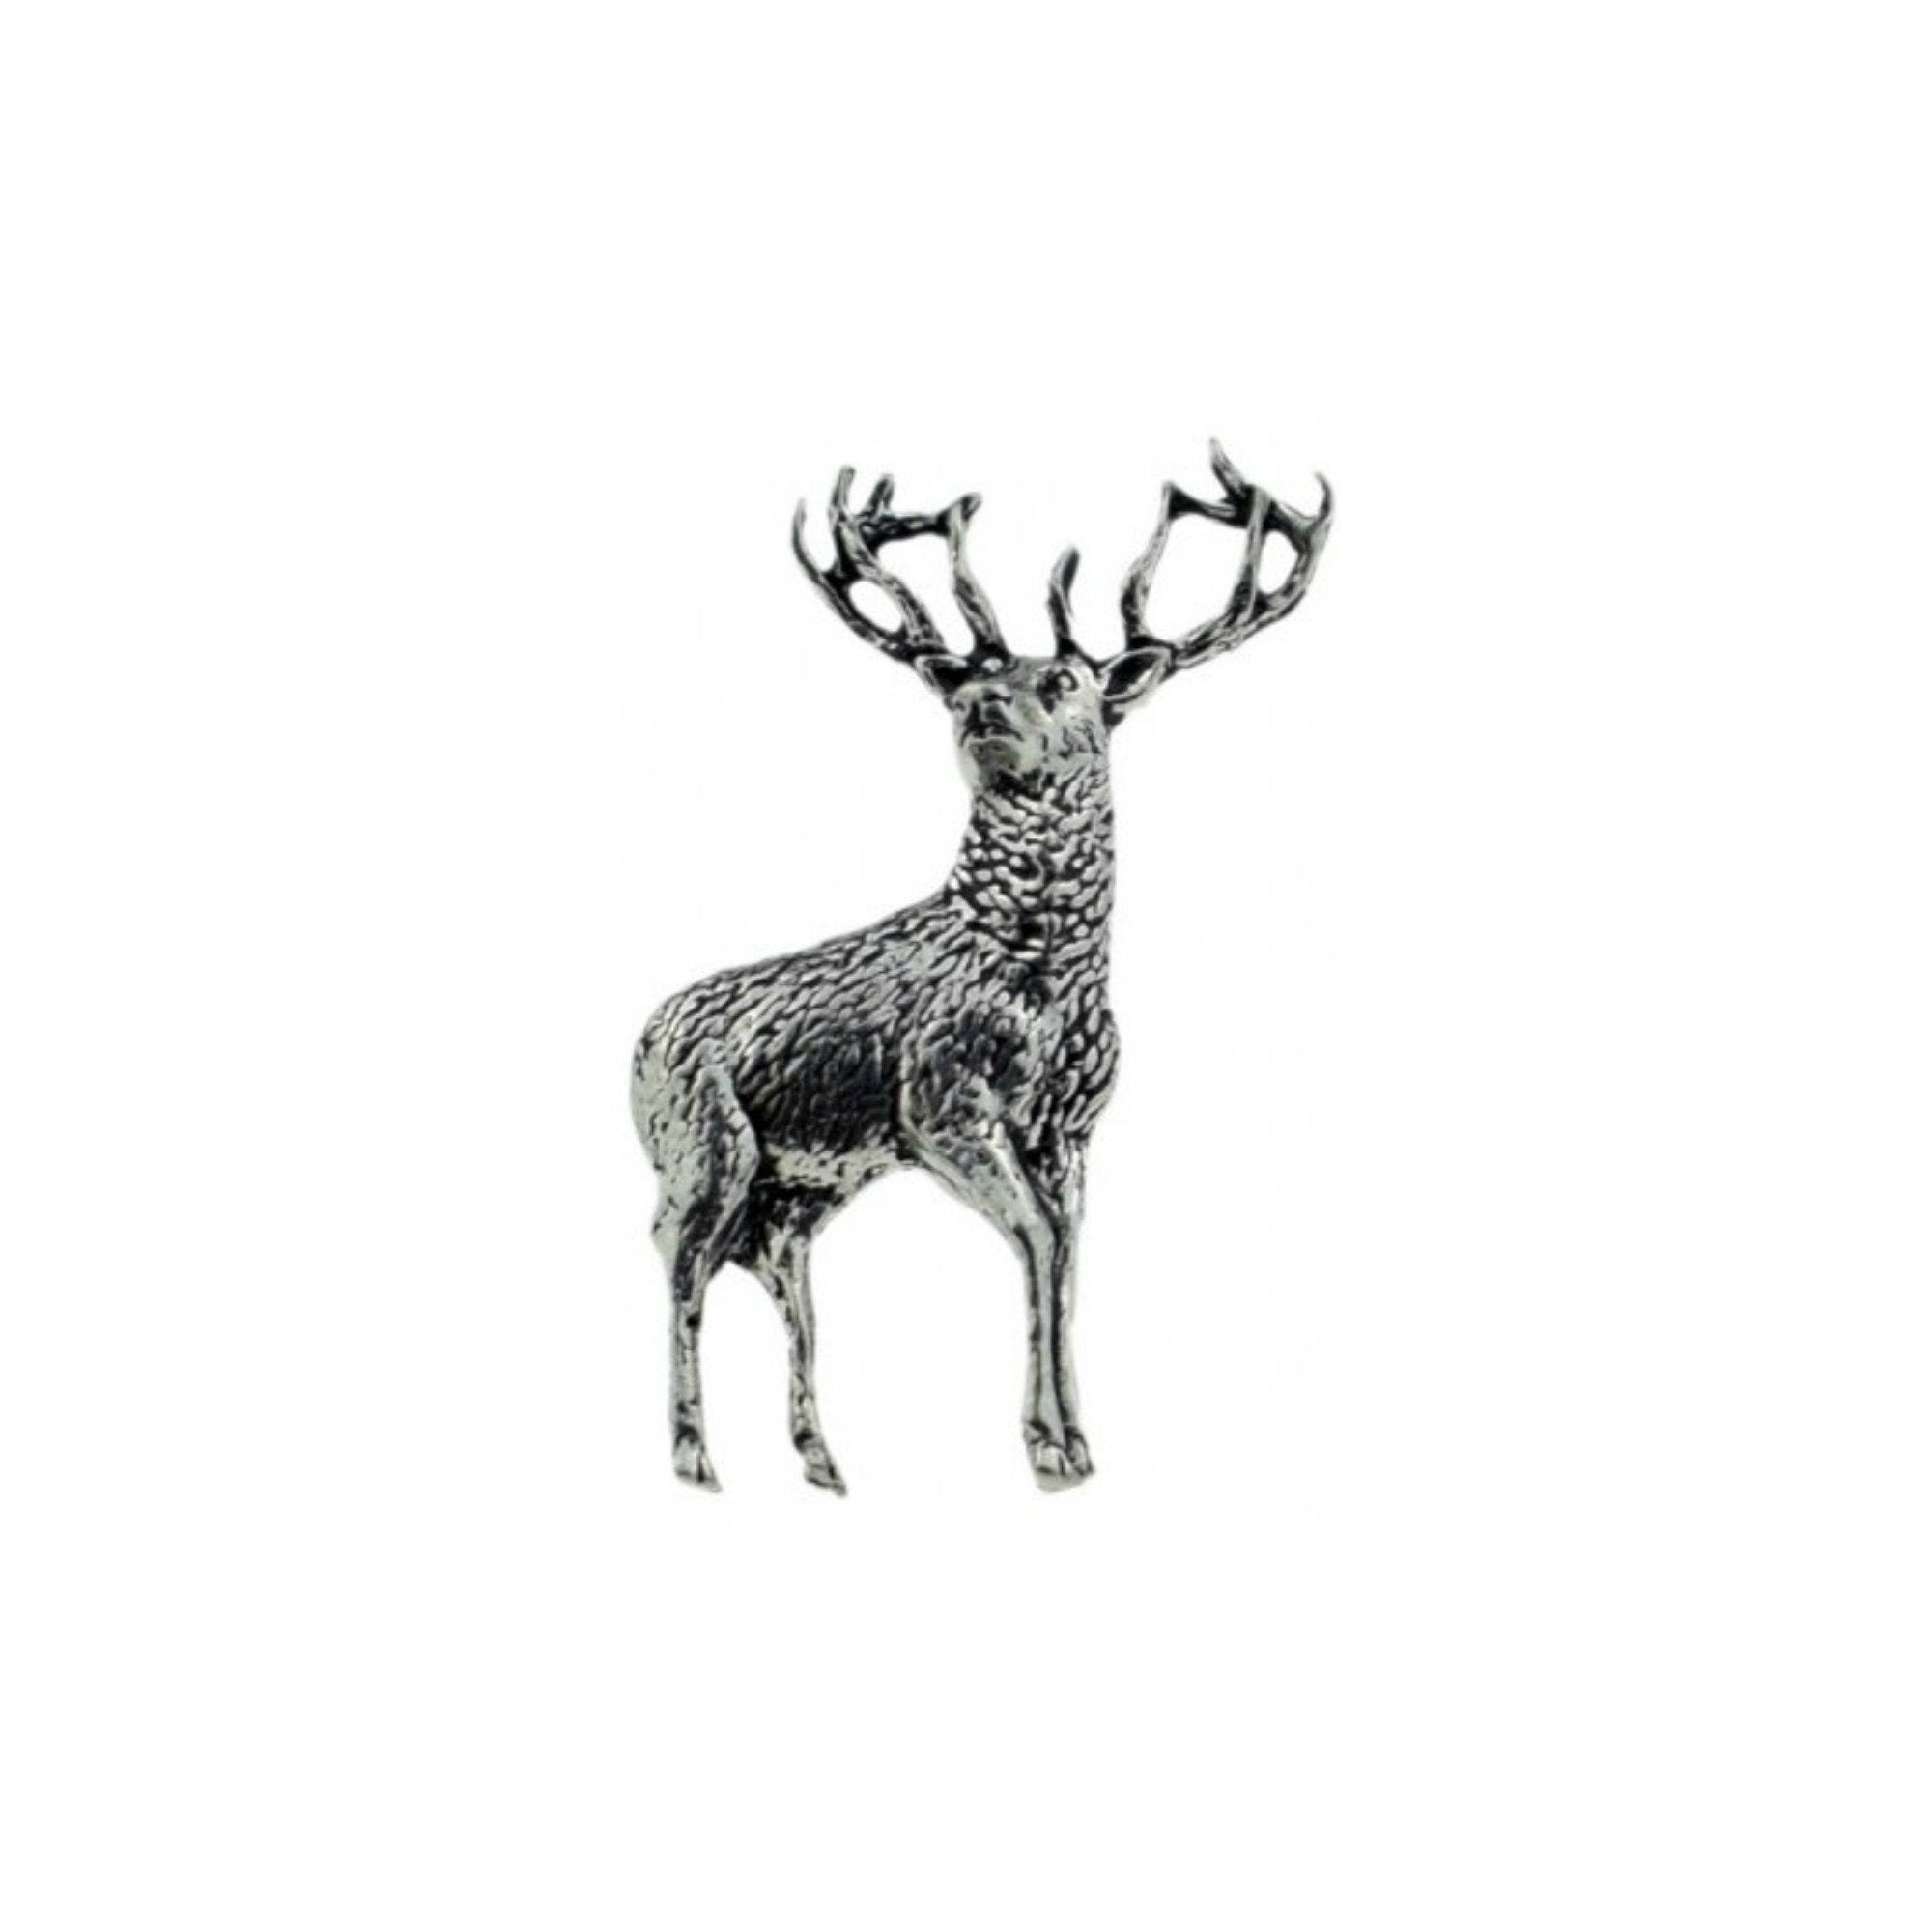 Standing Stag Deer Pewter Lapel Pin Badge - Minimum Mouse